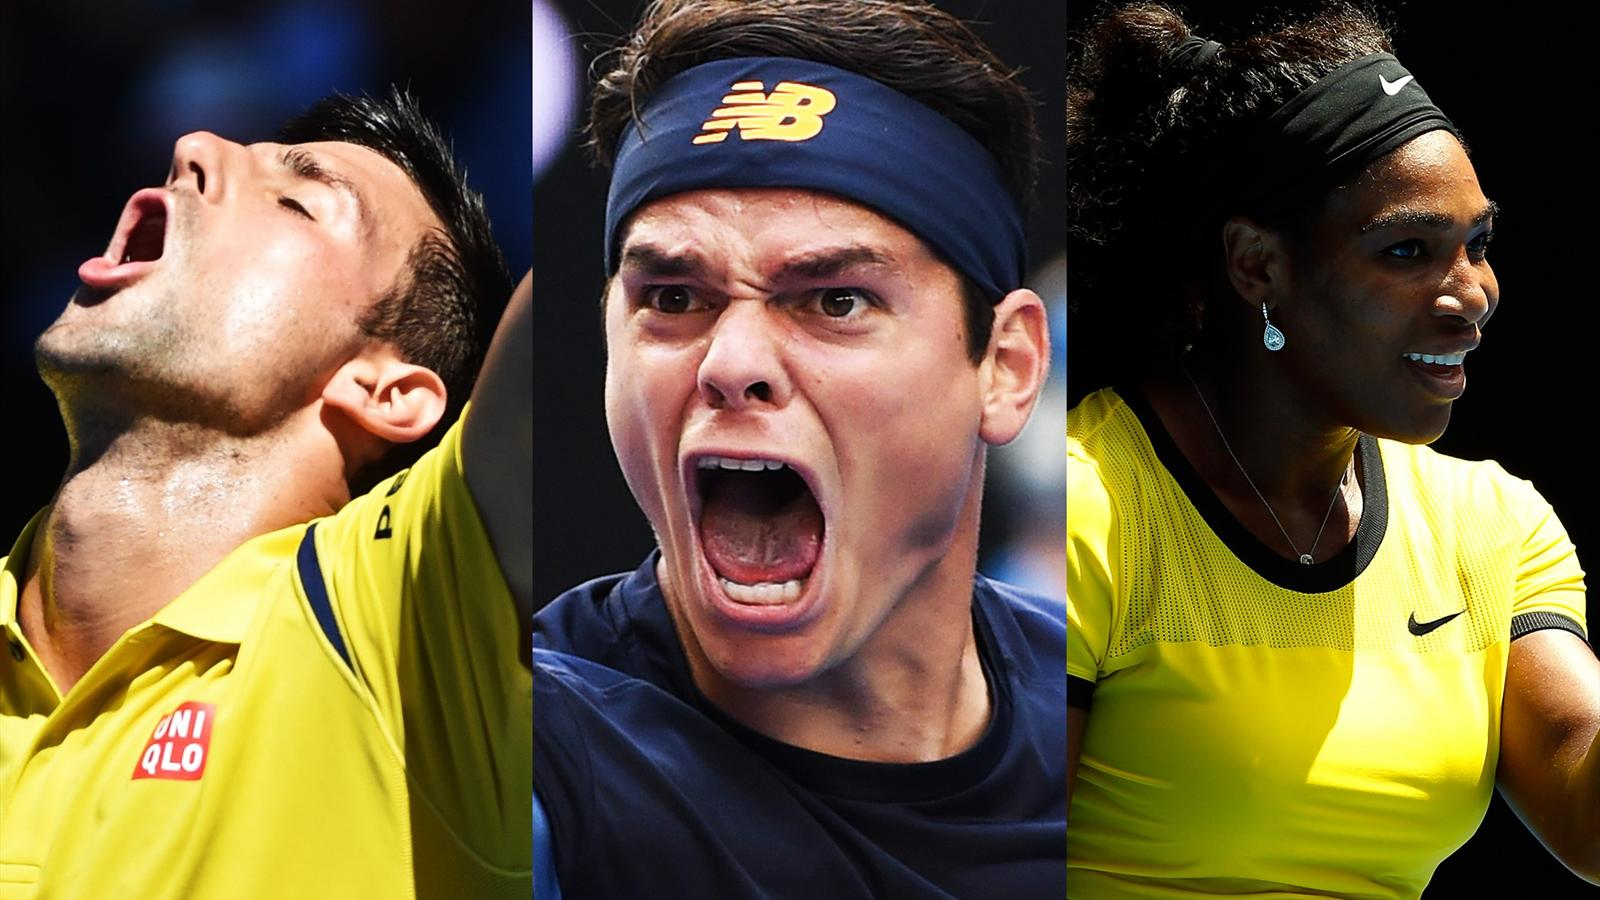 Novak Djokovic, Milos Raonic and Serena Williams